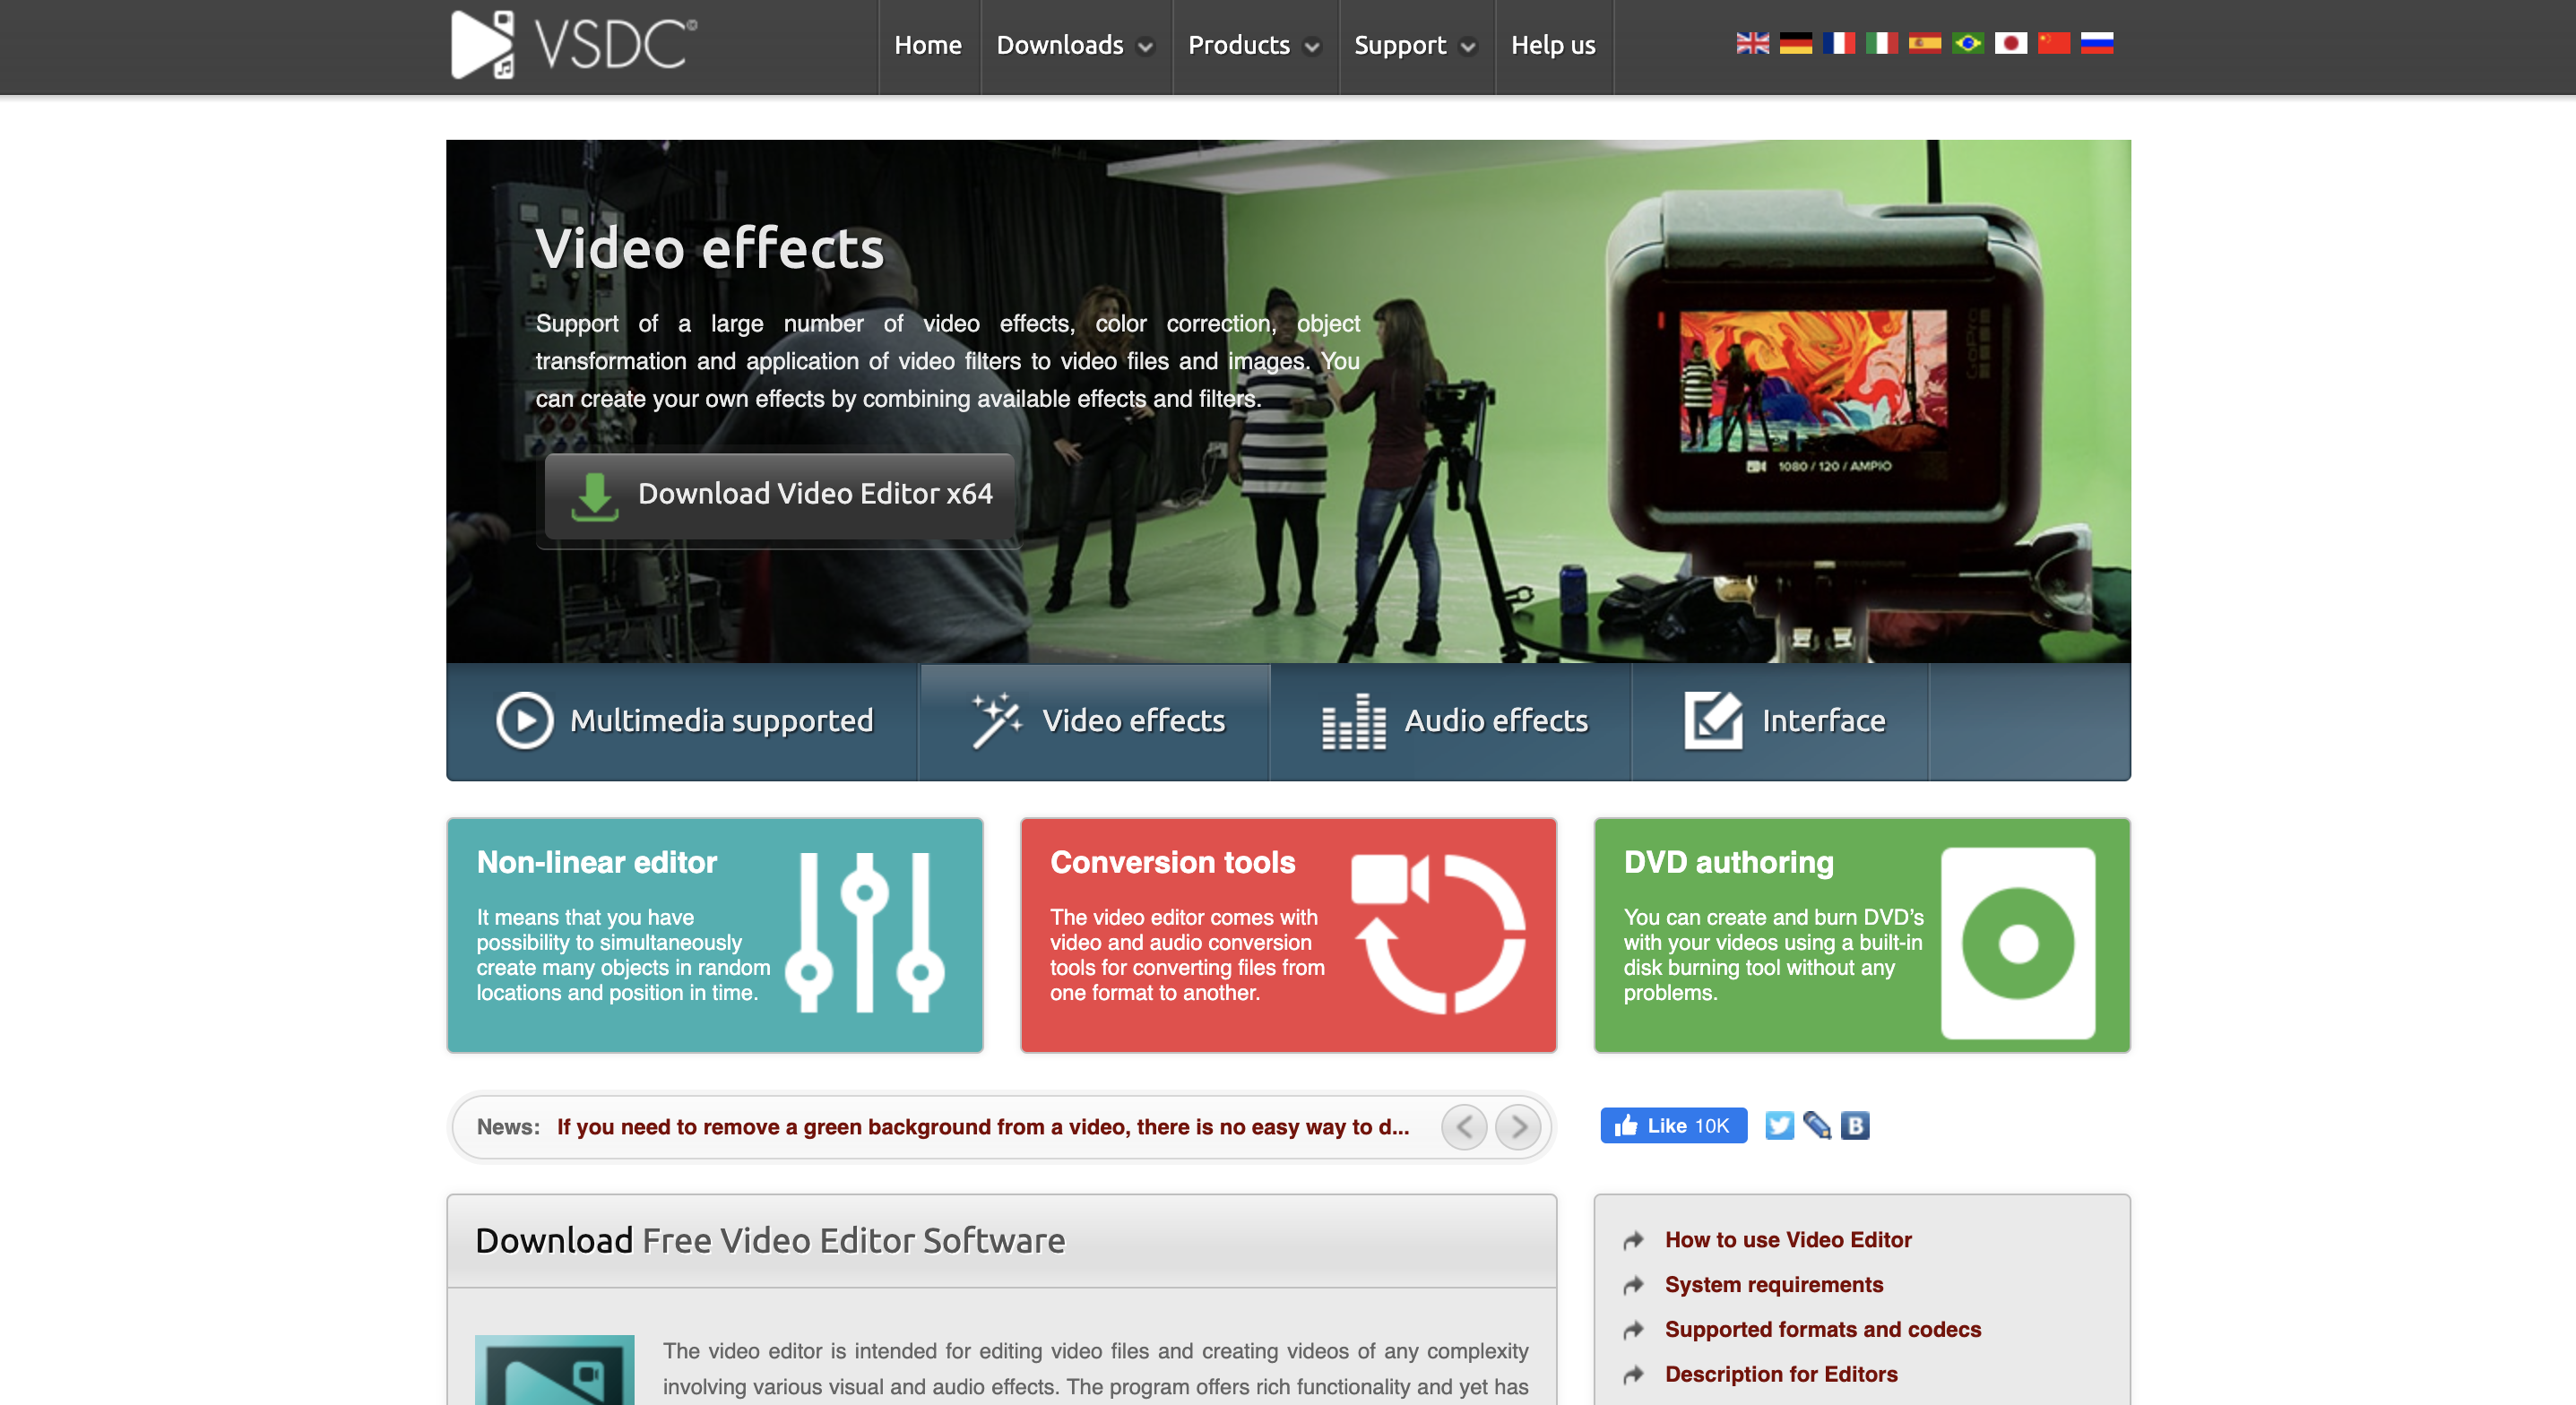 A screenshot of video editing software VSDC's website.